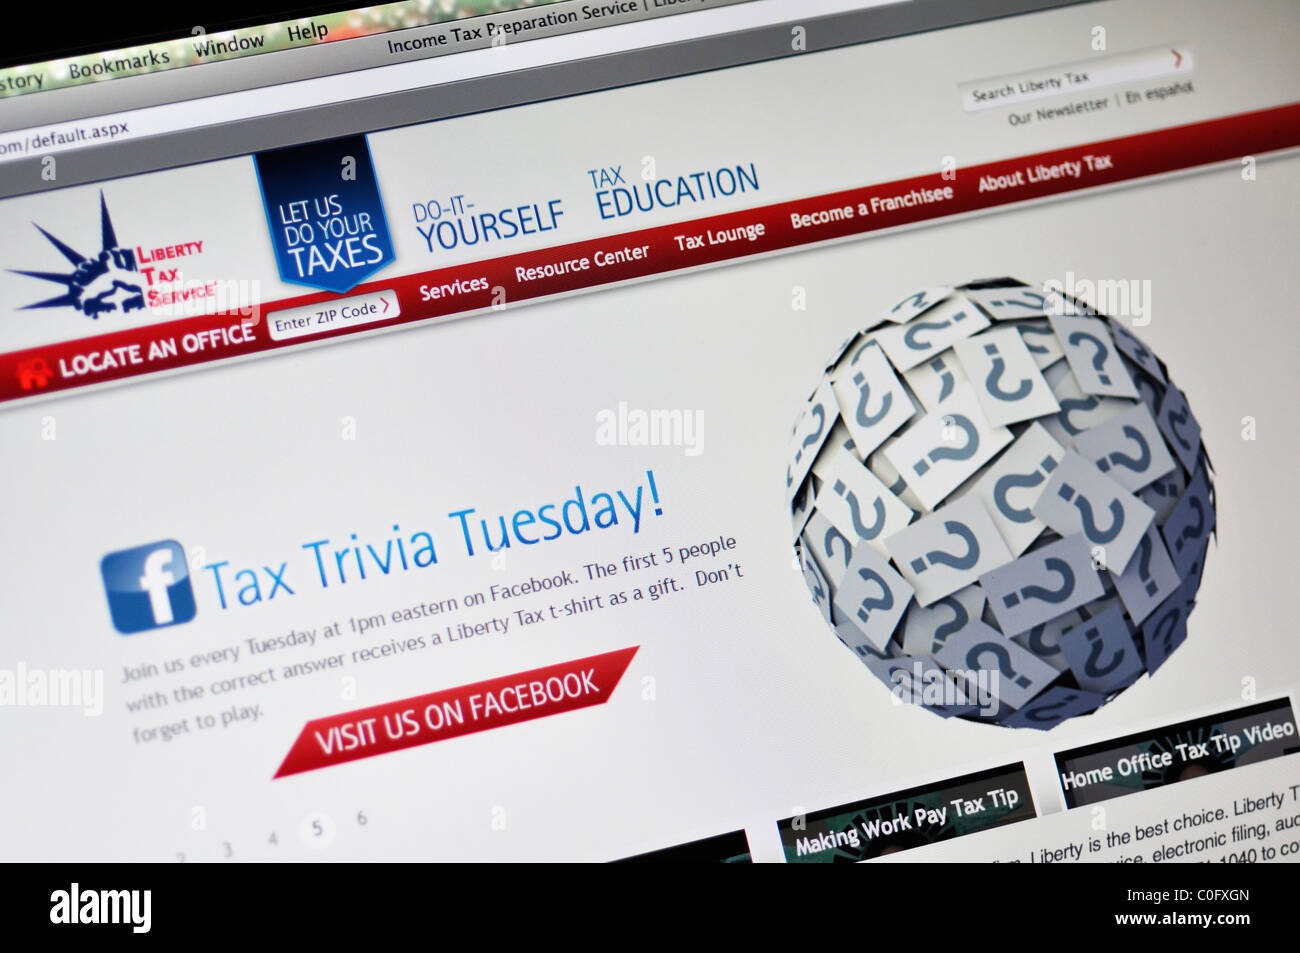 Liberty Tax Service - income tax preparation website - Stock Image